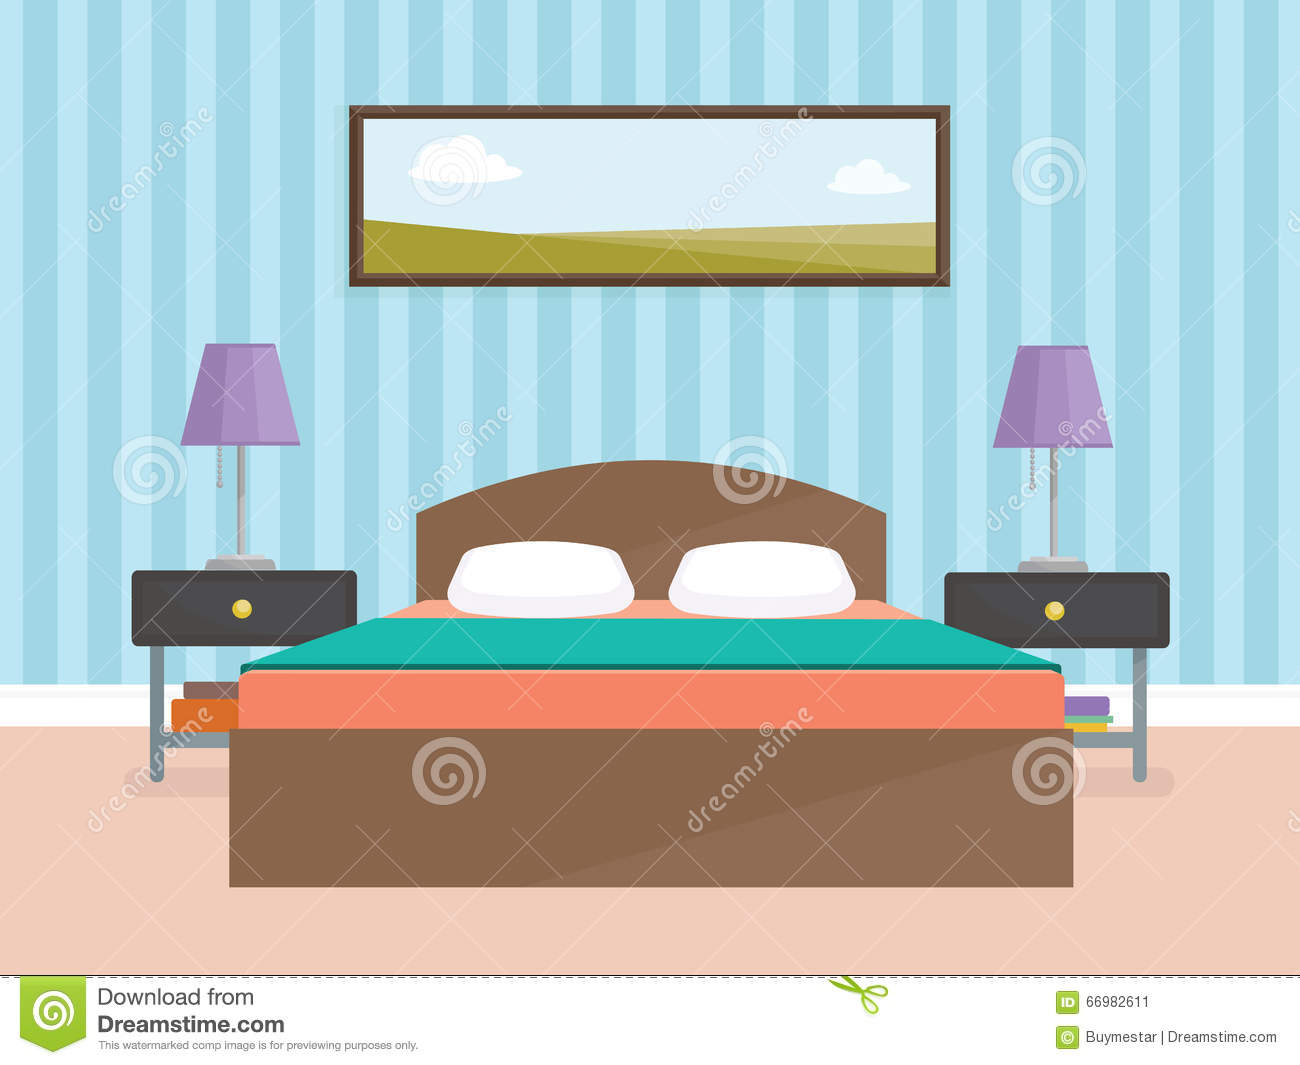 Bedroom design clipart bedroom cliparts bedroom for Room design vector